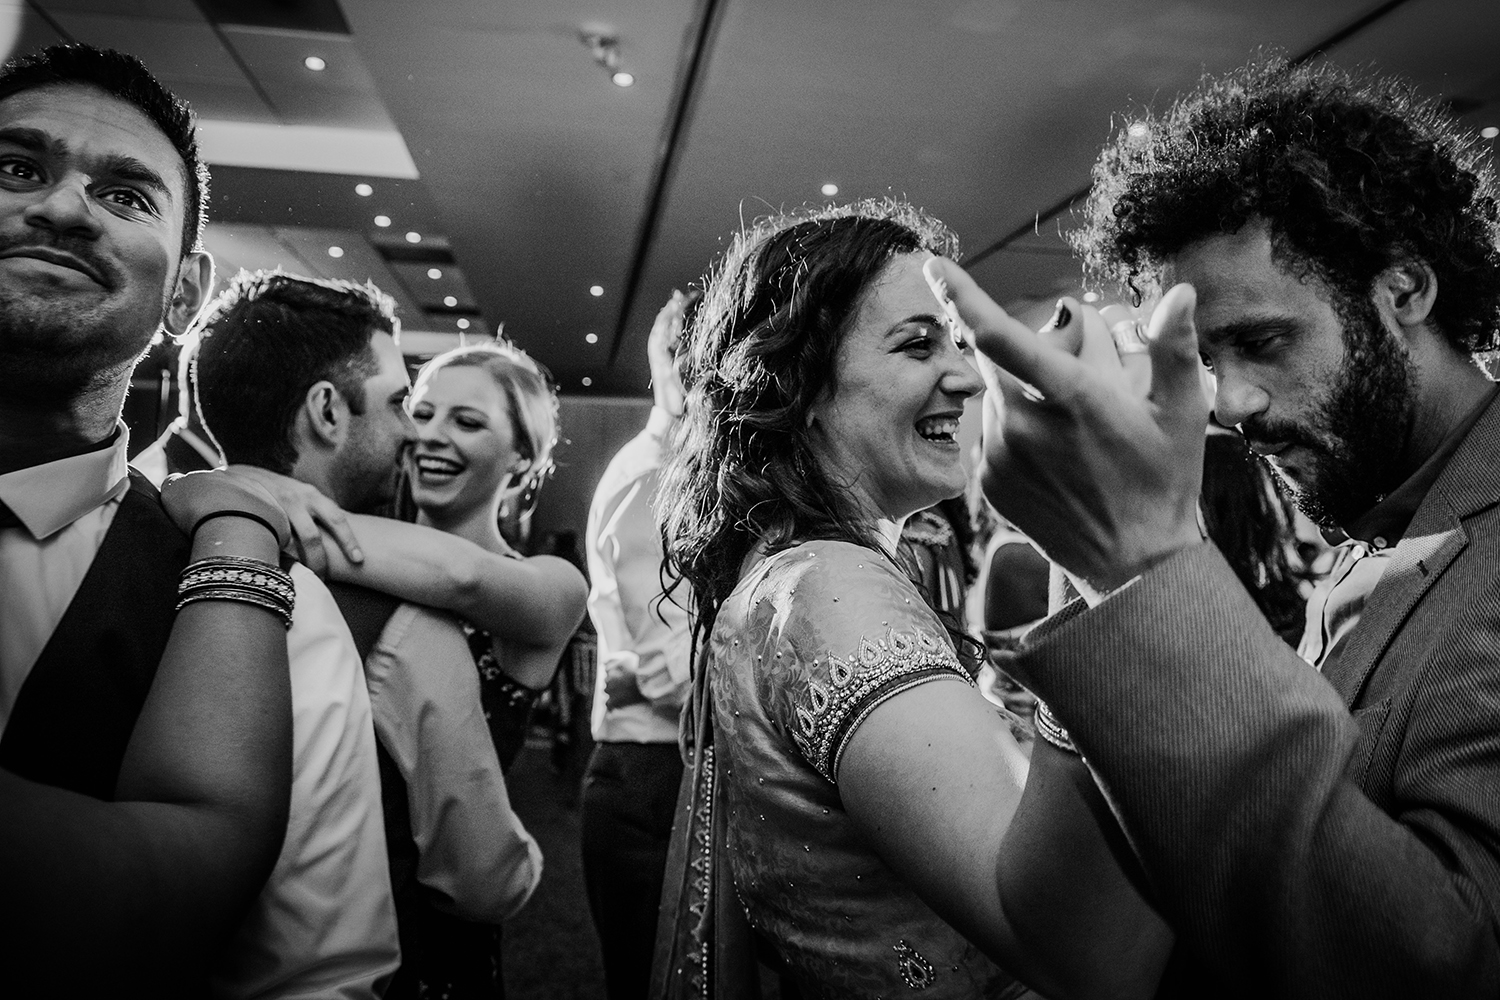 Bw photo of guests dancing